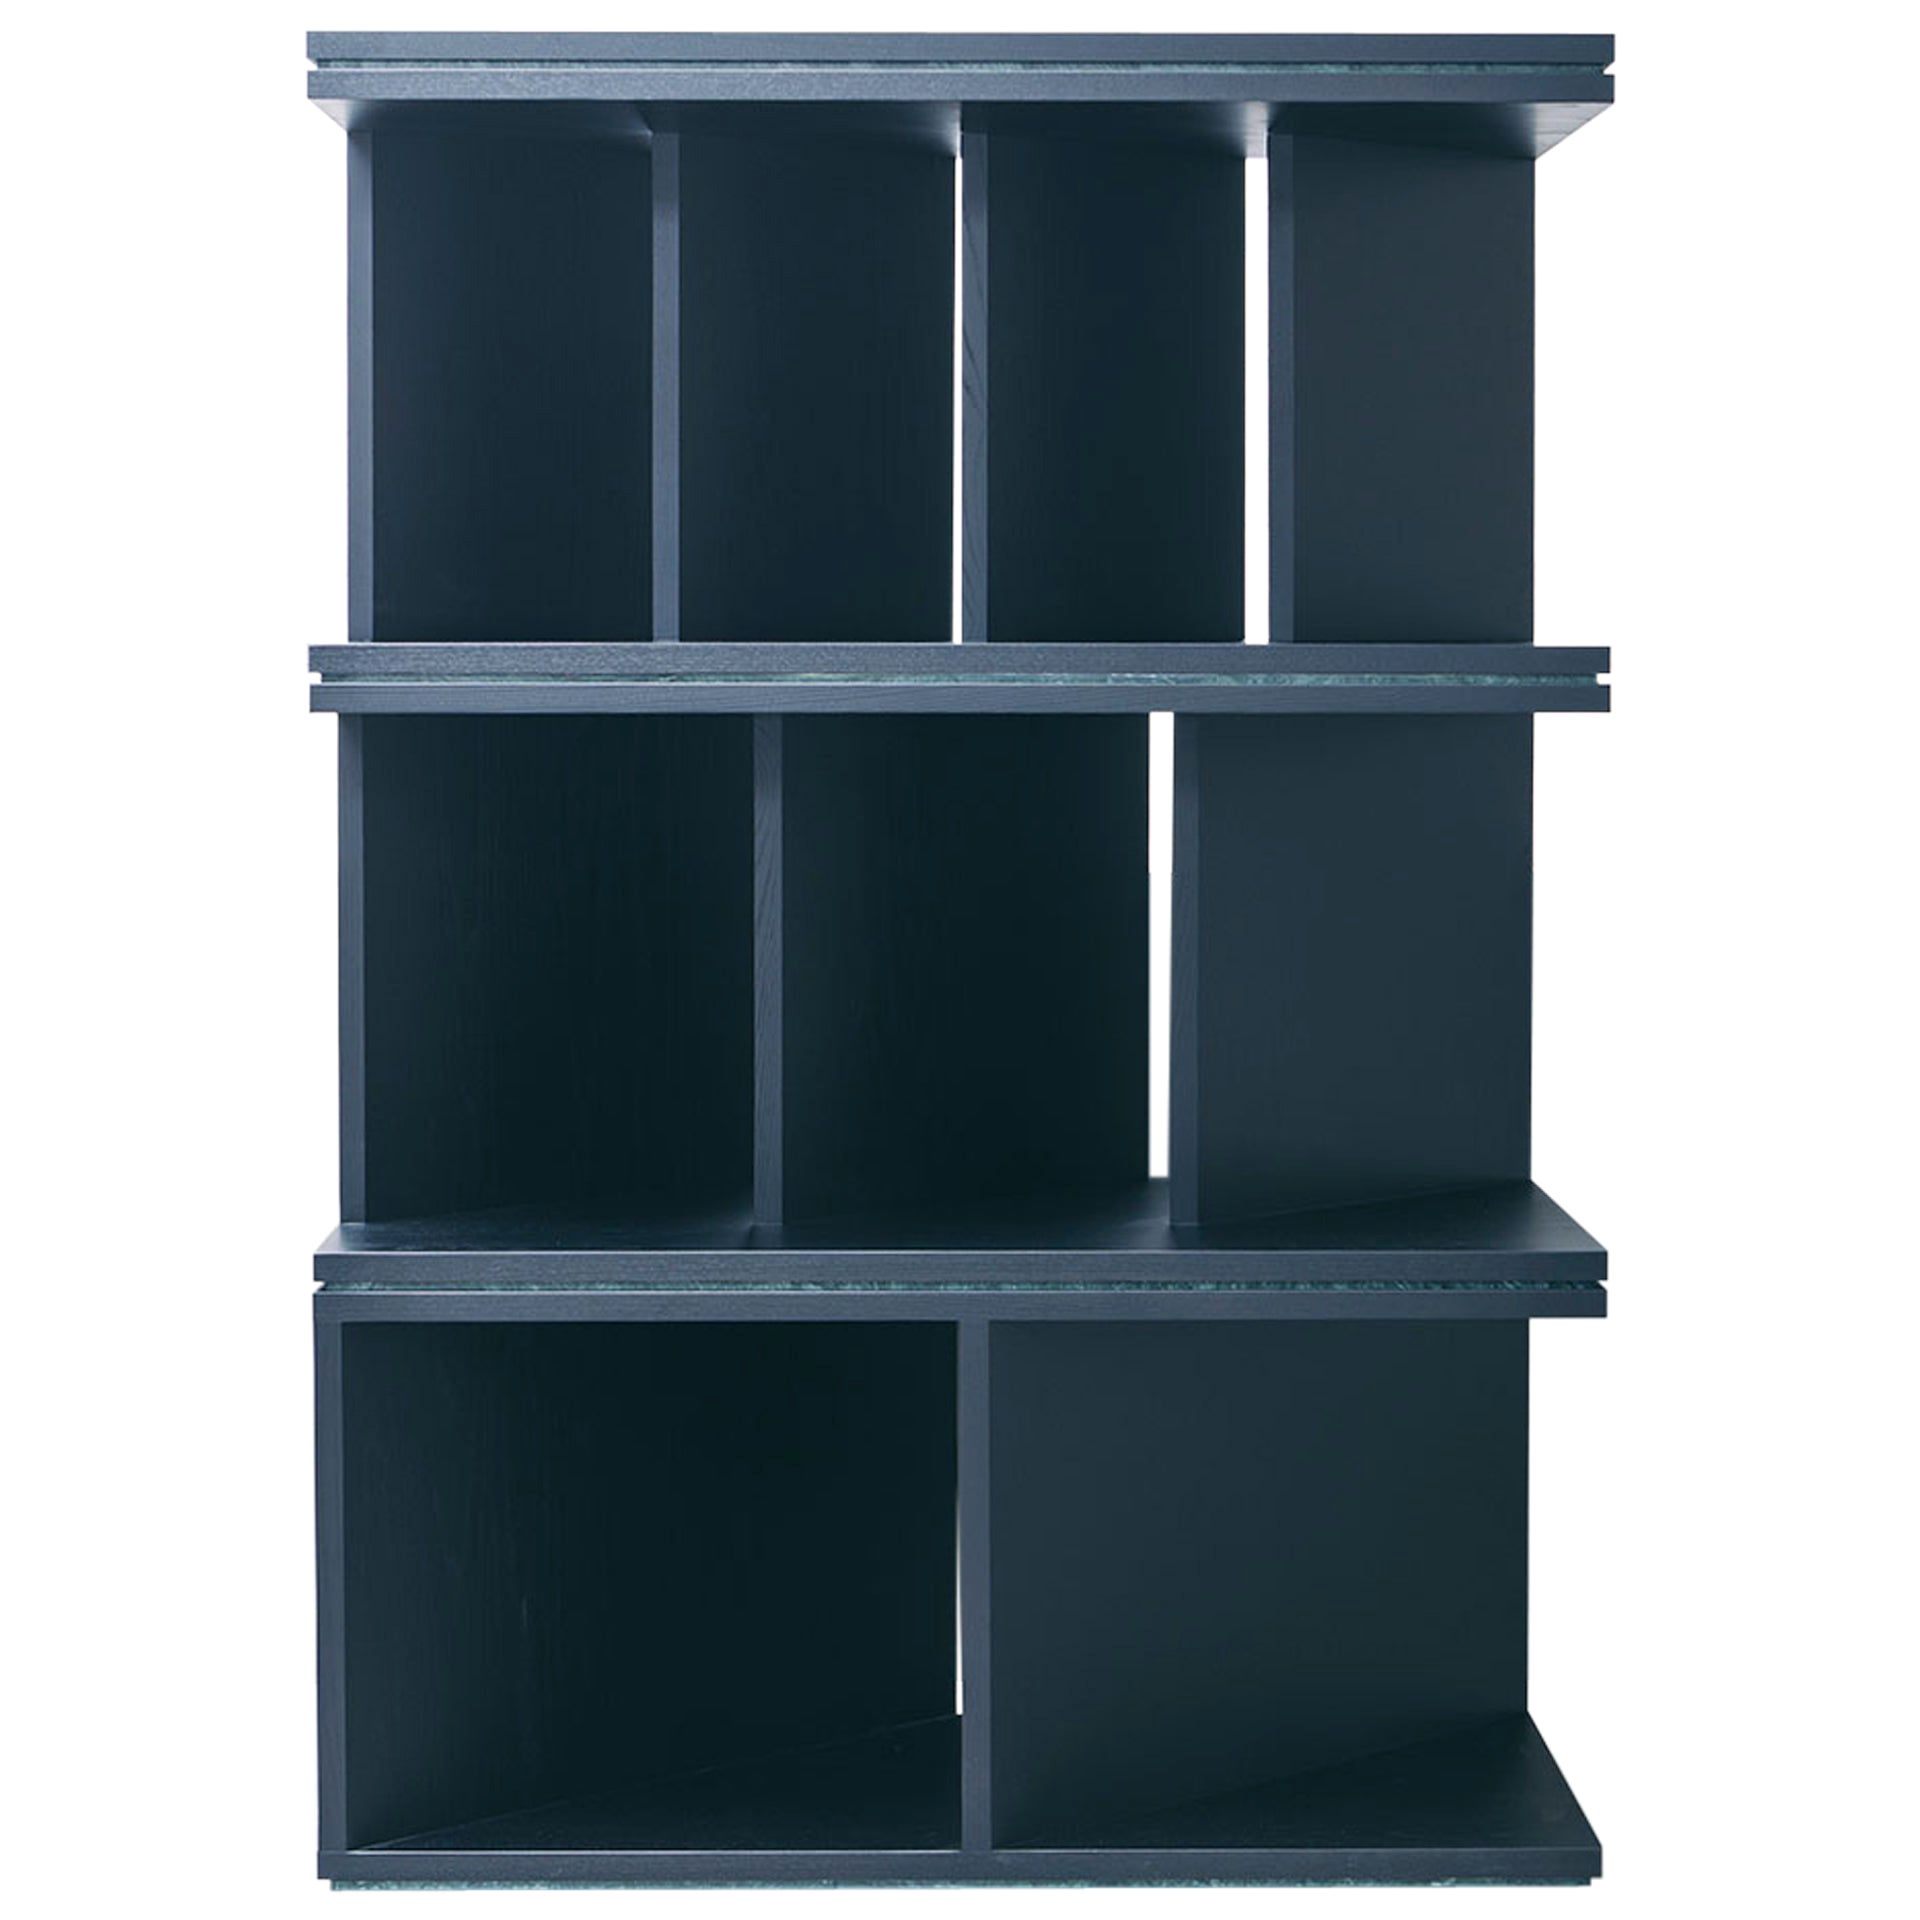 Black Ash Wood Room Divider and Bookcase, Oblique 01.1 by barh